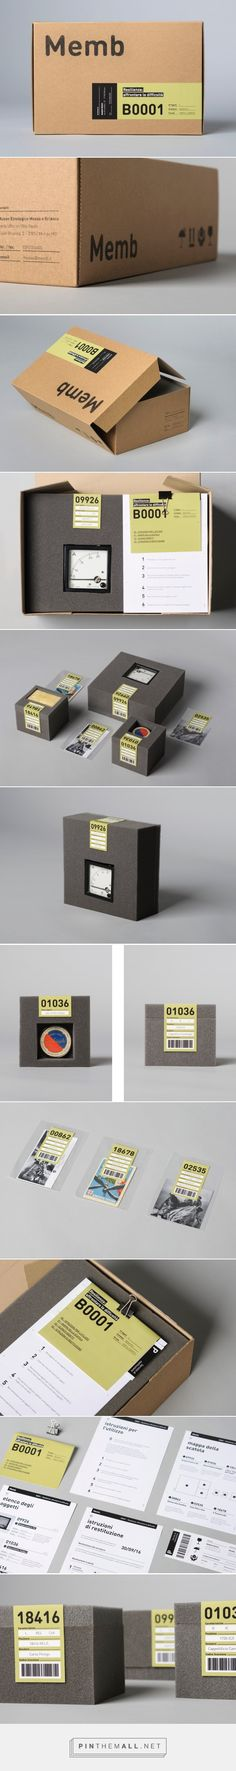 Memb Prototype (Student Project) - Packaging of the World - Creative Package Design Gallery - http://www.packagingoftheworld.com/2016/11/memb-prototype-student-project.html